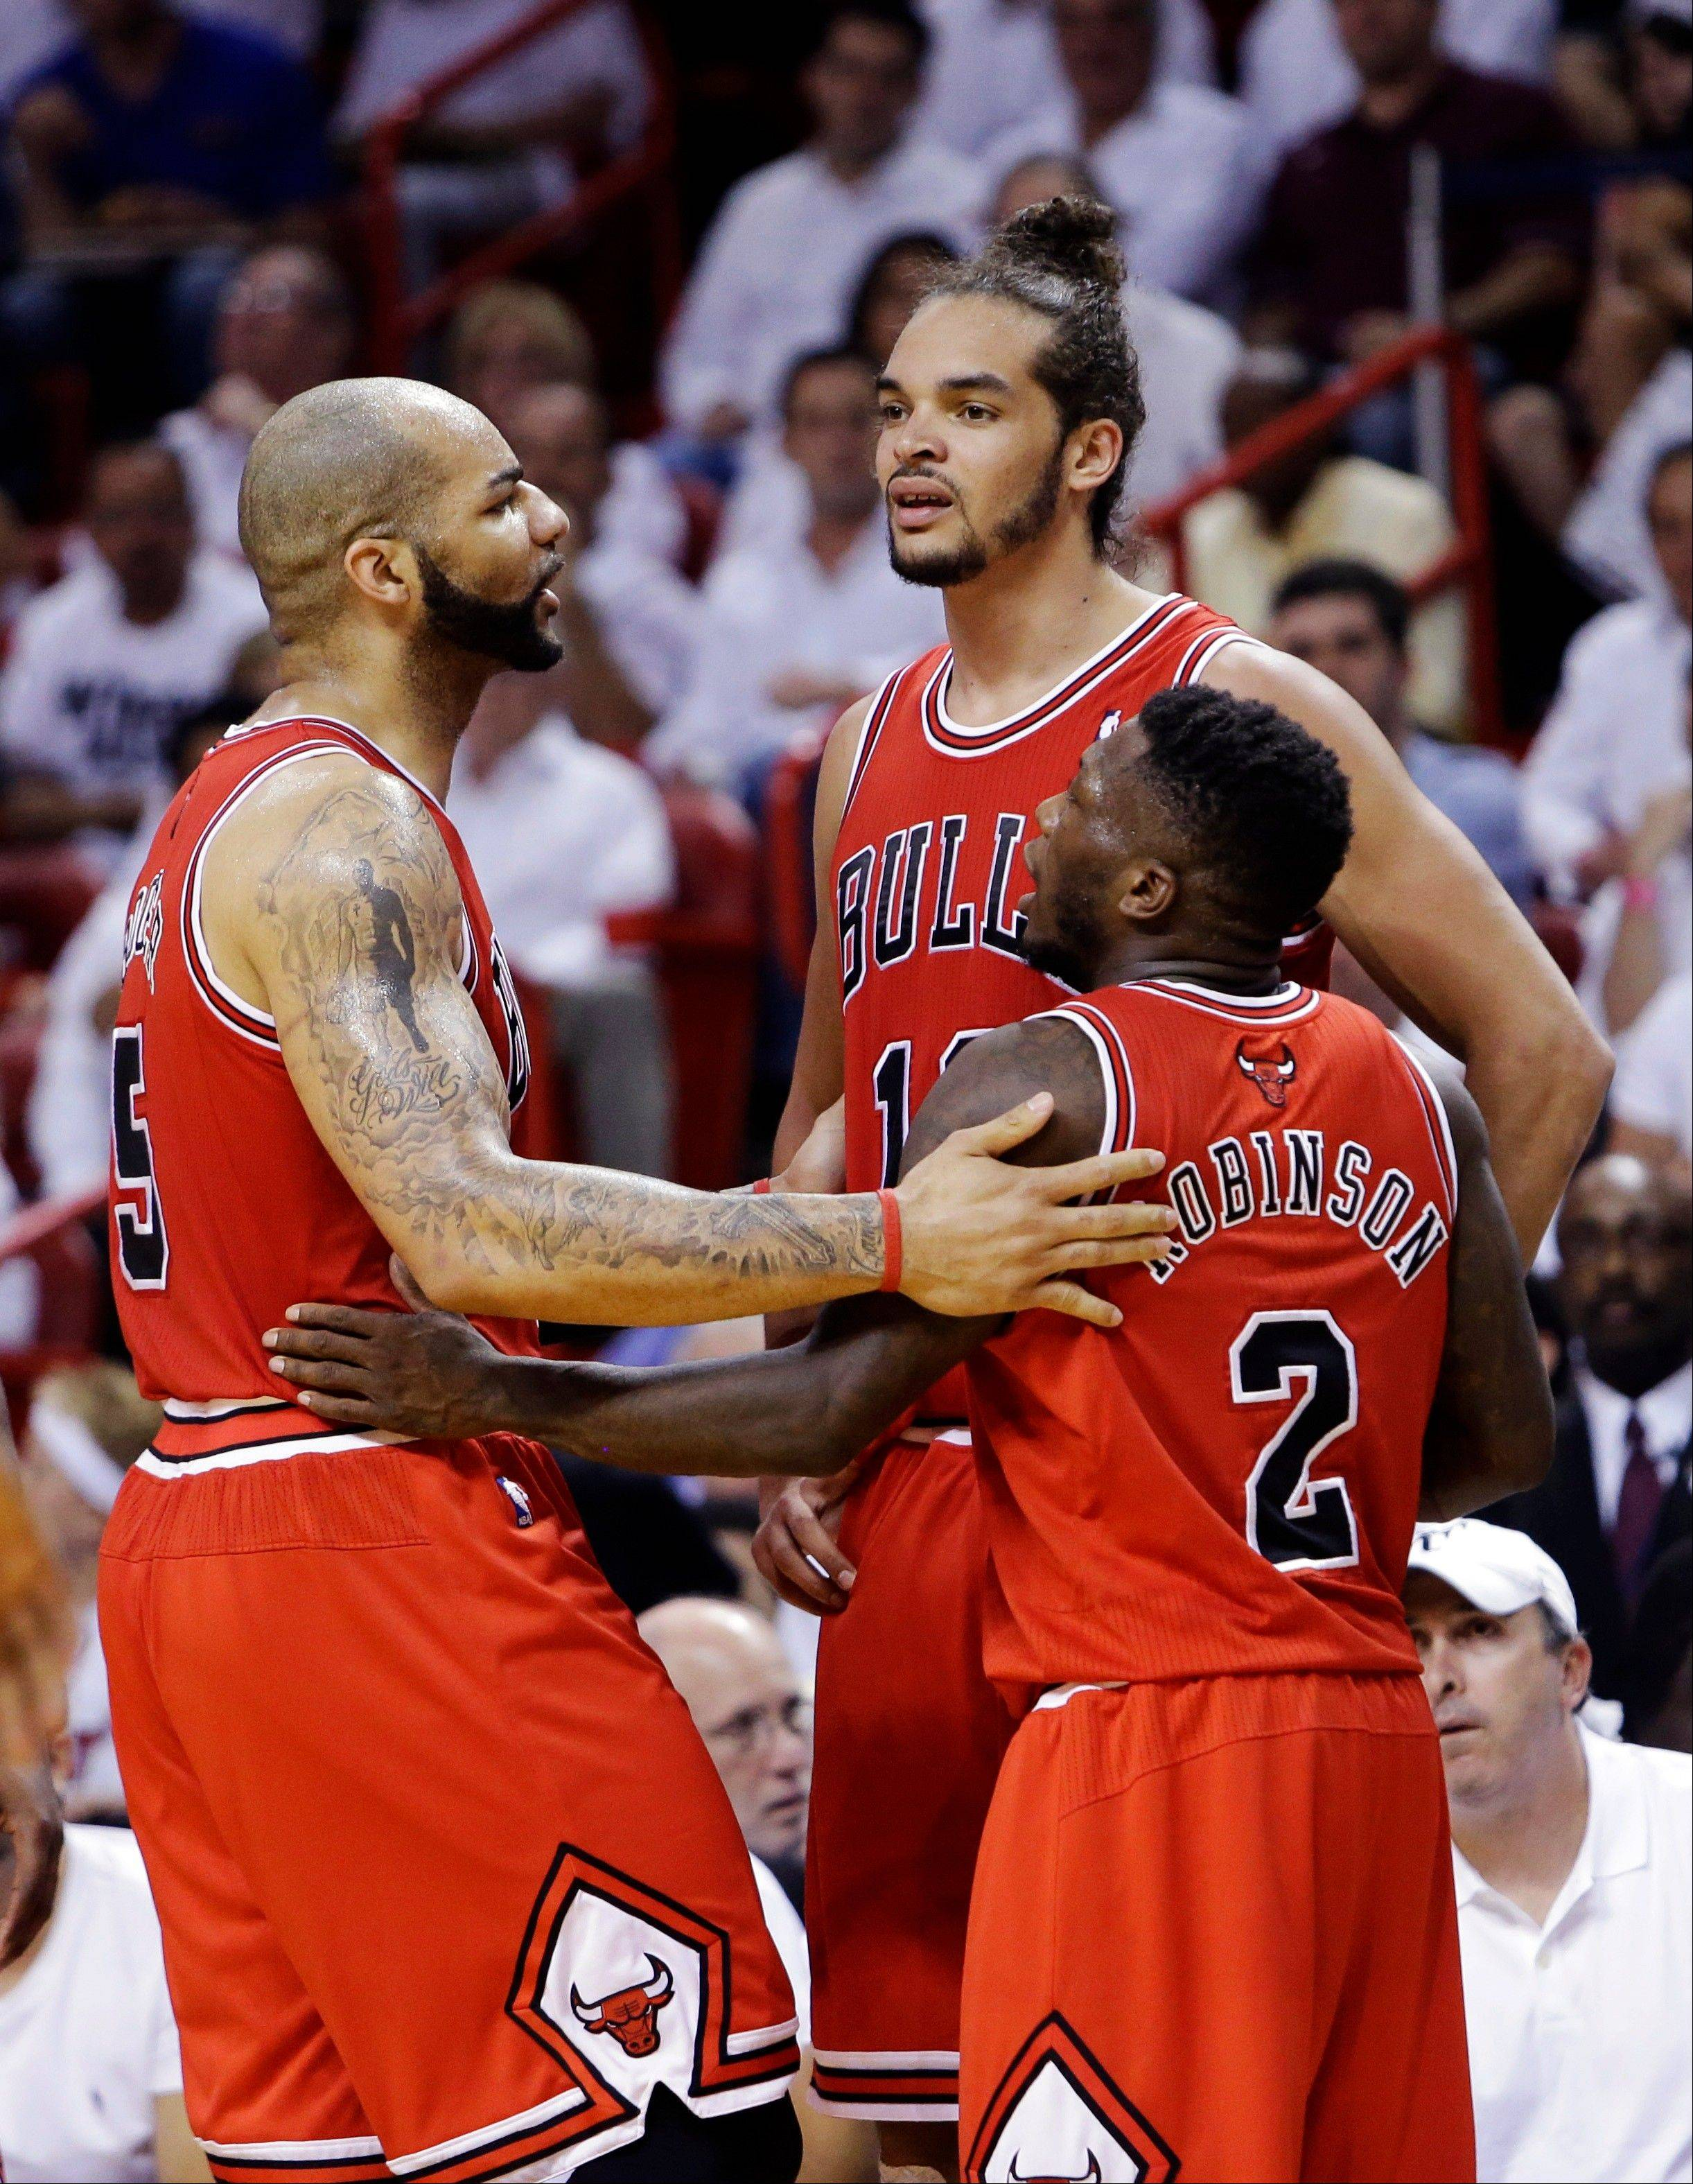 Carlos Boozer, left, Joakim Noah, center, guard Nate Robinson and the rest of the Bulls must do a better job of keeping their emotions in check Friday at the United Center when they take on the Heat in Game 3 of their Eastern Conference semifinal series.